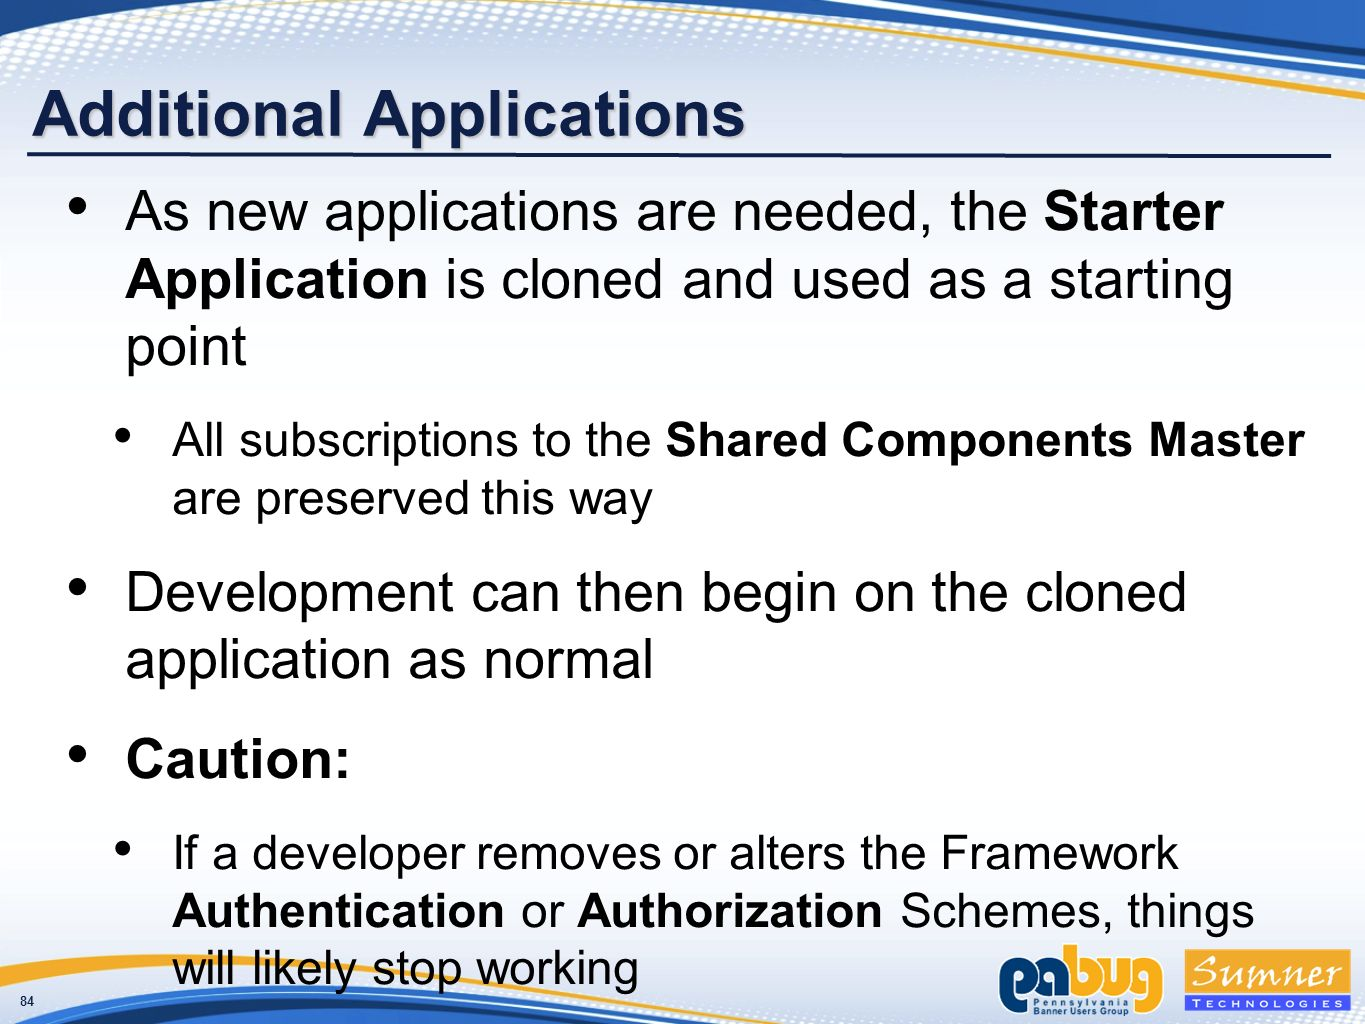 84 Additional Applications As new applications are needed, the Starter Application is cloned and used as a starting point All subscriptions to the Shared Components Master are preserved this way Development can then begin on the cloned application as normal Caution: If a developer removes or alters the Framework Authentication or Authorization Schemes, things will likely stop working